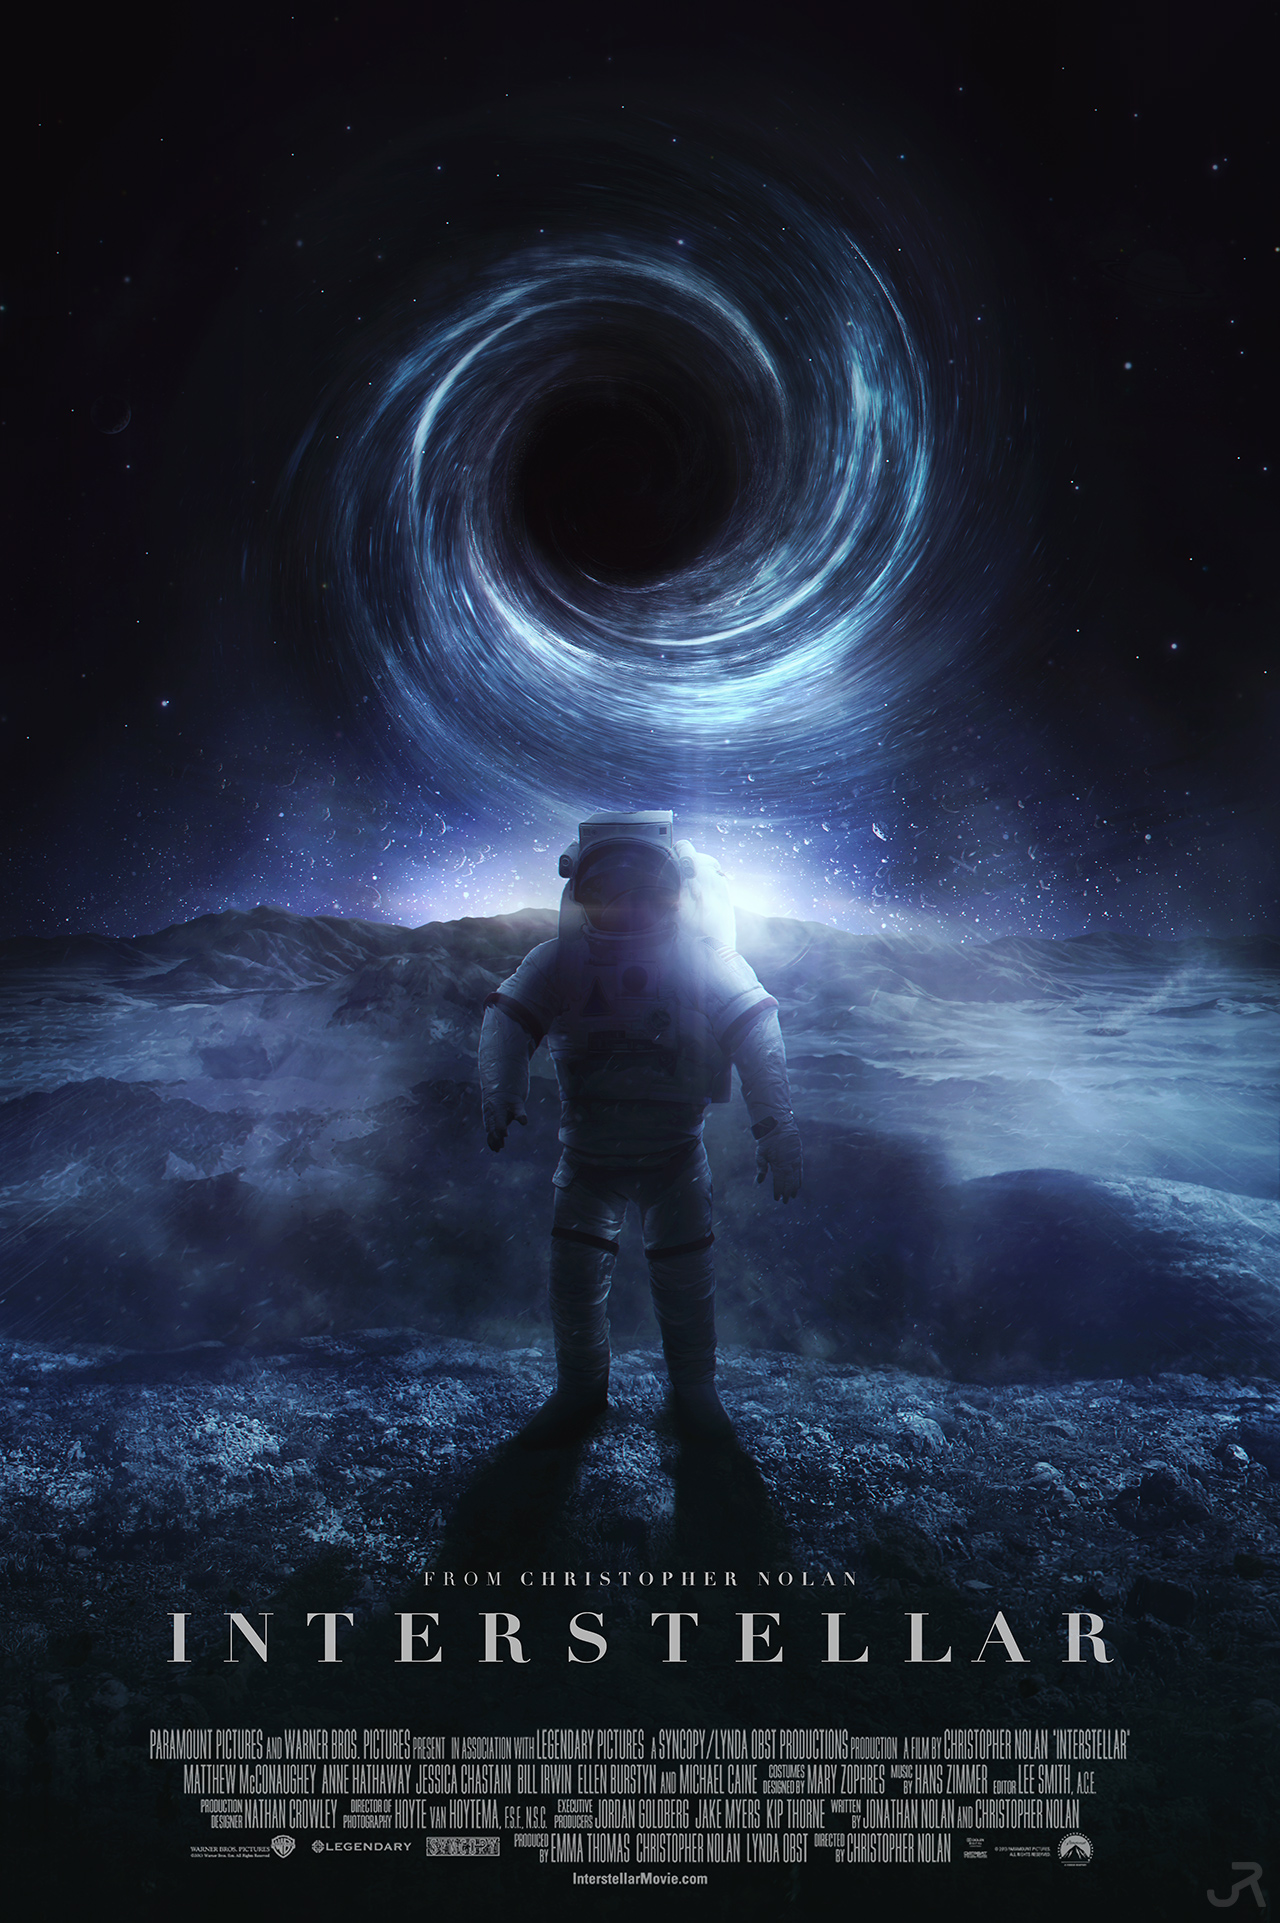 Interstellar Movie Review - Stance: Studies on the Family